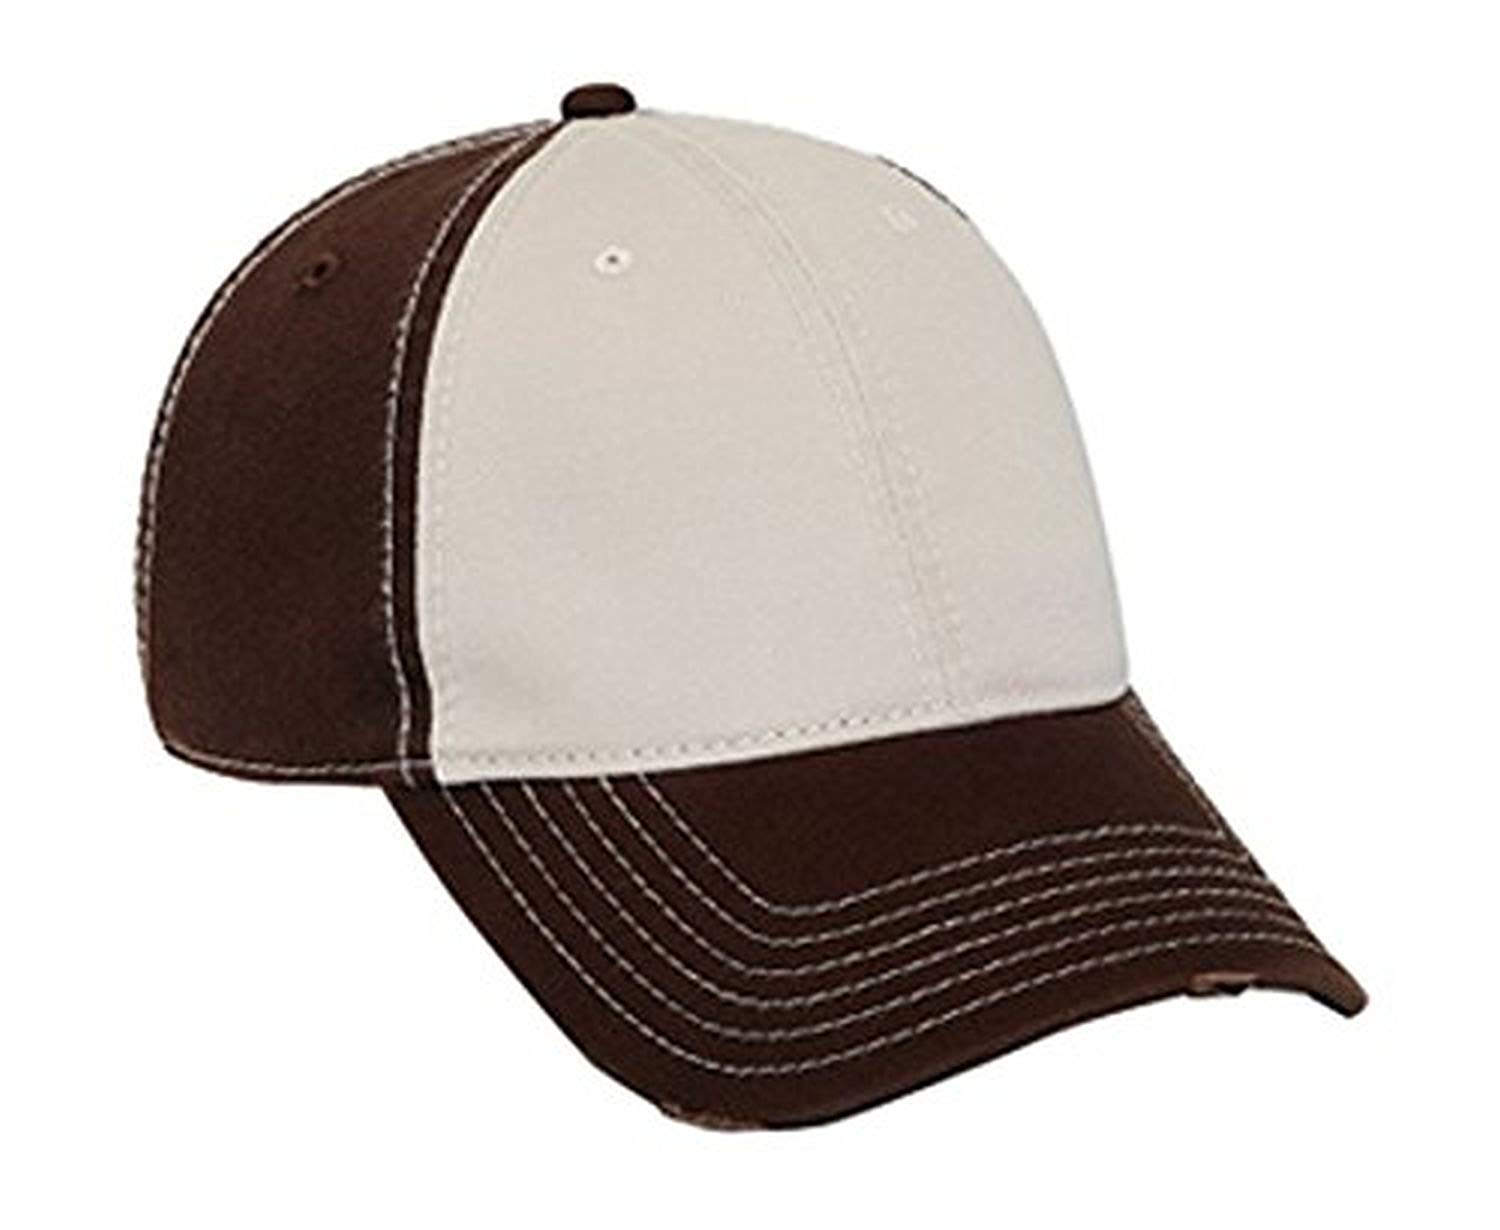 Hats & Caps Shop Superior Garment Washed Cn Twill Distressed Visor Low Profile Pro Style Caps - By TheTargetBuys